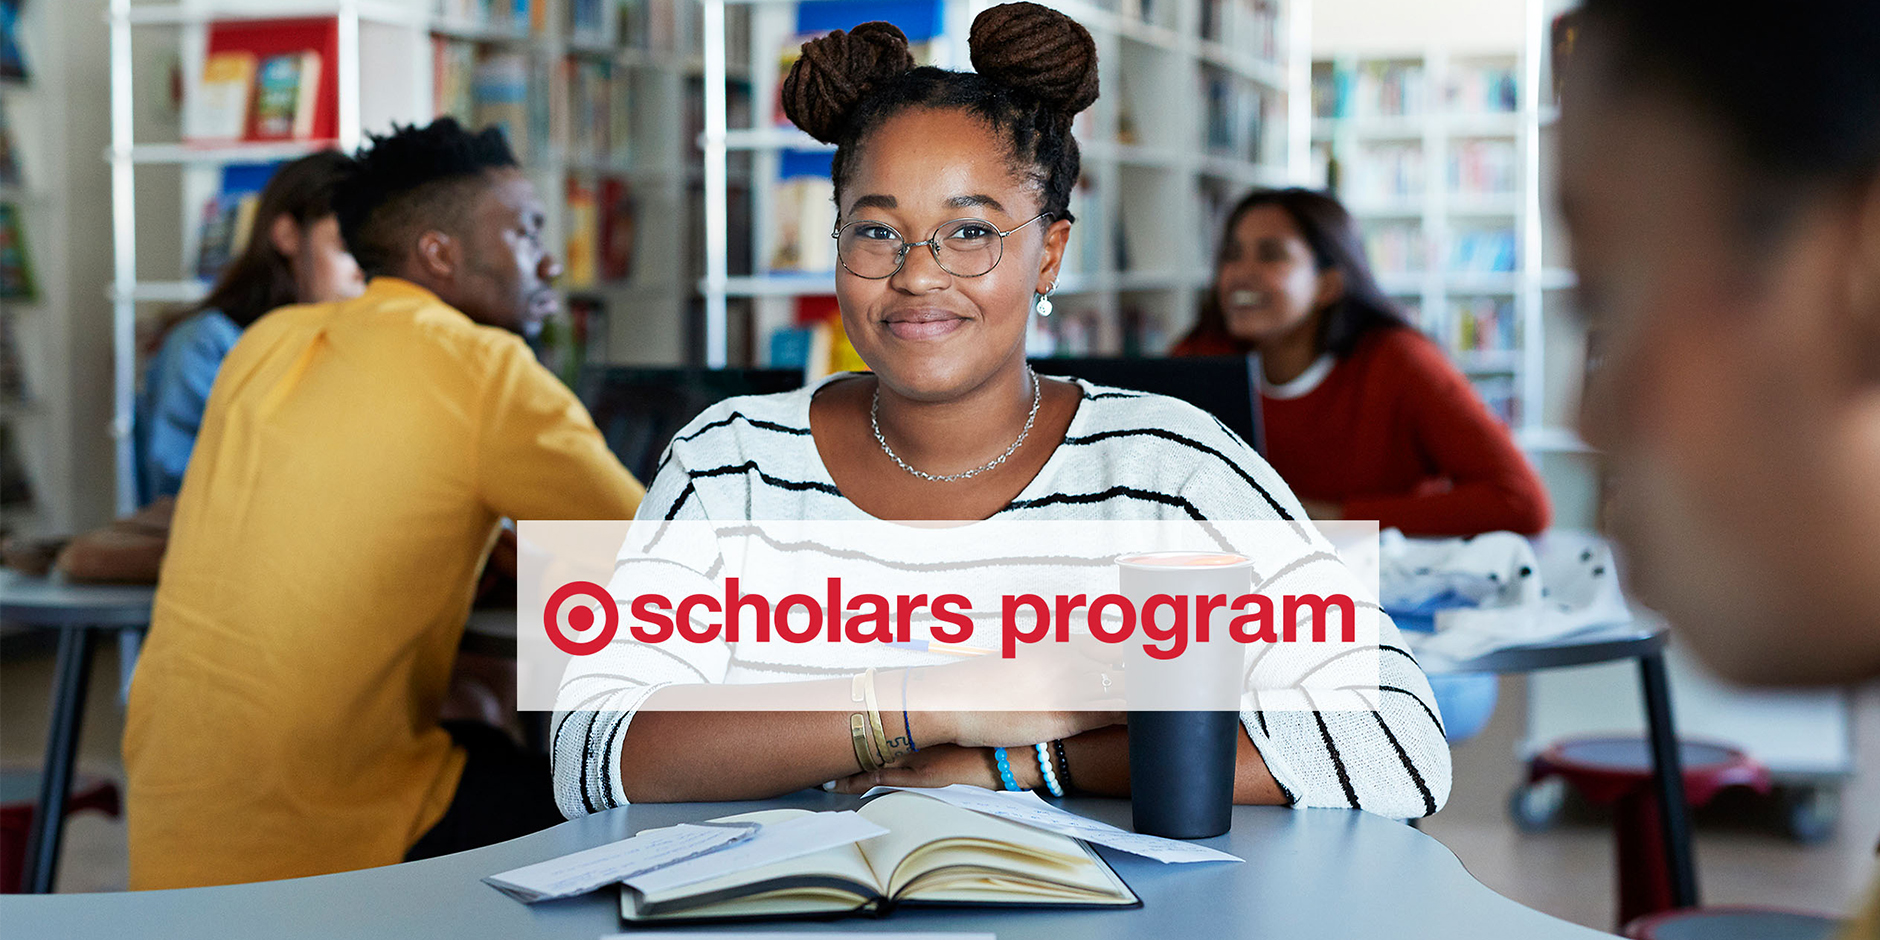 A smiling student in a striped shirt sits at a desk with her books while other students study in the background. A banner reads Target Scholars Program in red text over a white background.